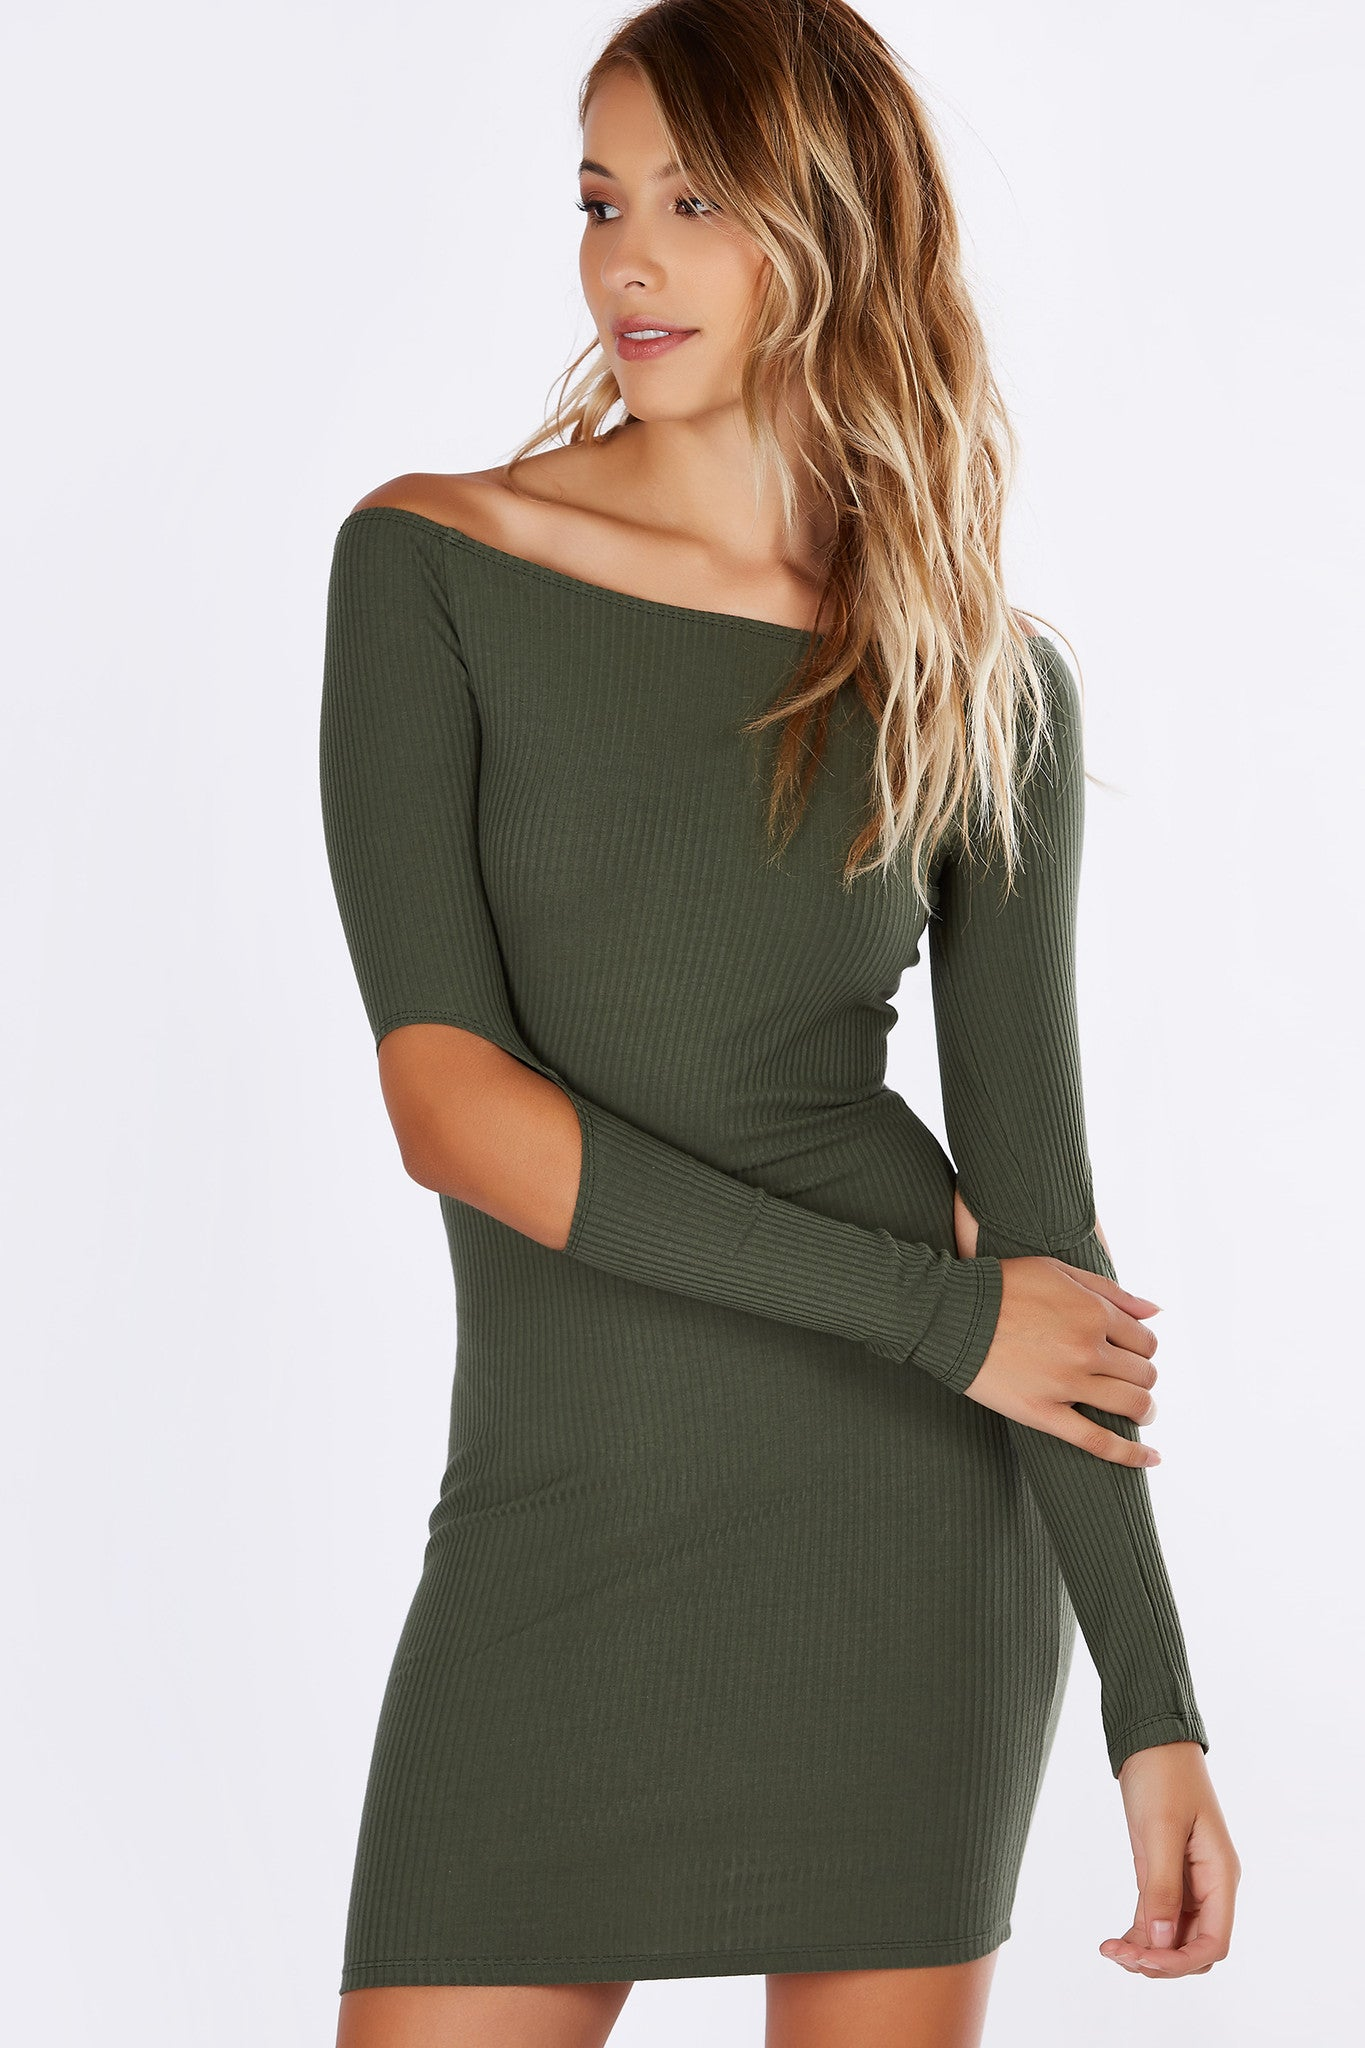 A slim fit, sexy mini dress just in time for the upcoming season! Chic neckline with fitted long sleeves. Features slits on each elbow for an unexpected twist. Ribbed material provides amazing stretch for all night of dancing!